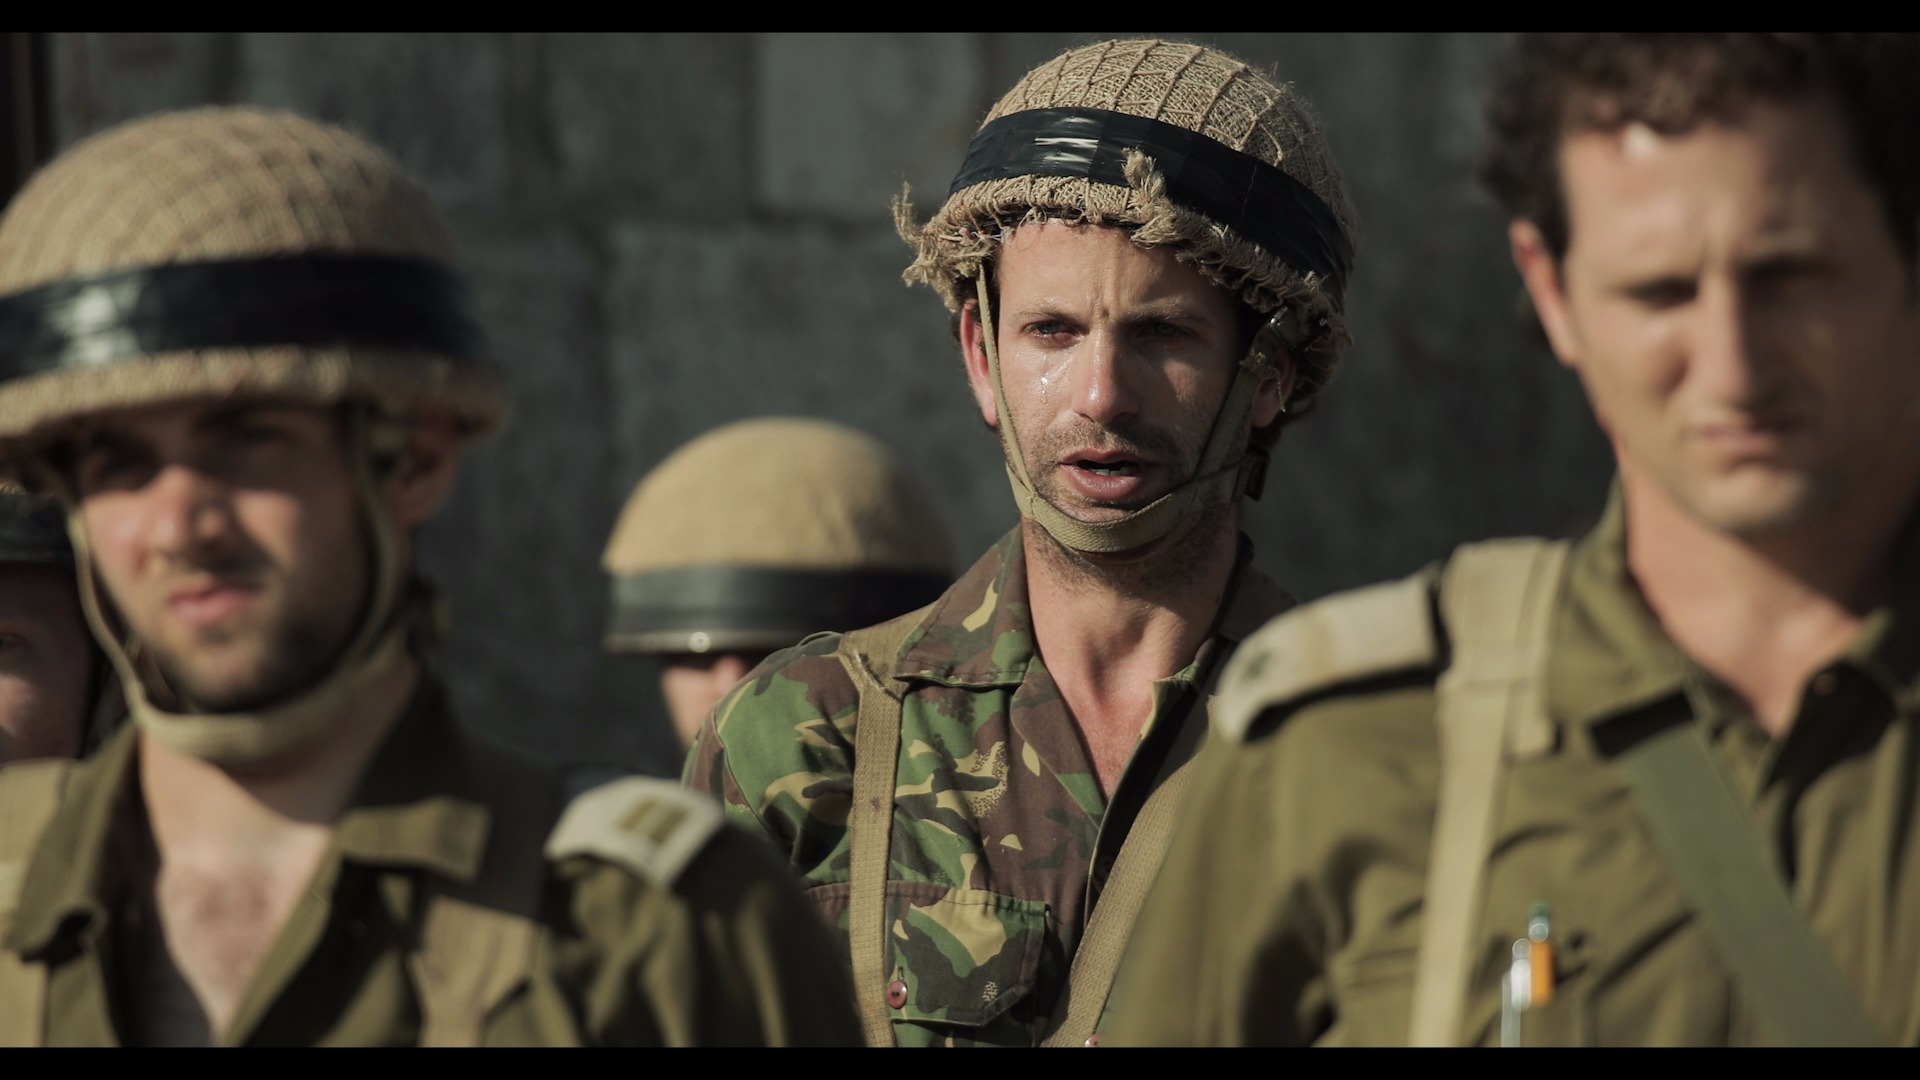 Docudrama 'IN OUR HANDS: The Battle for Jerusalem' Commemorates the 50th Anniversary of Jerusalem's  Six-Day War, Premiering in U.S. Cinemas May 23 Only